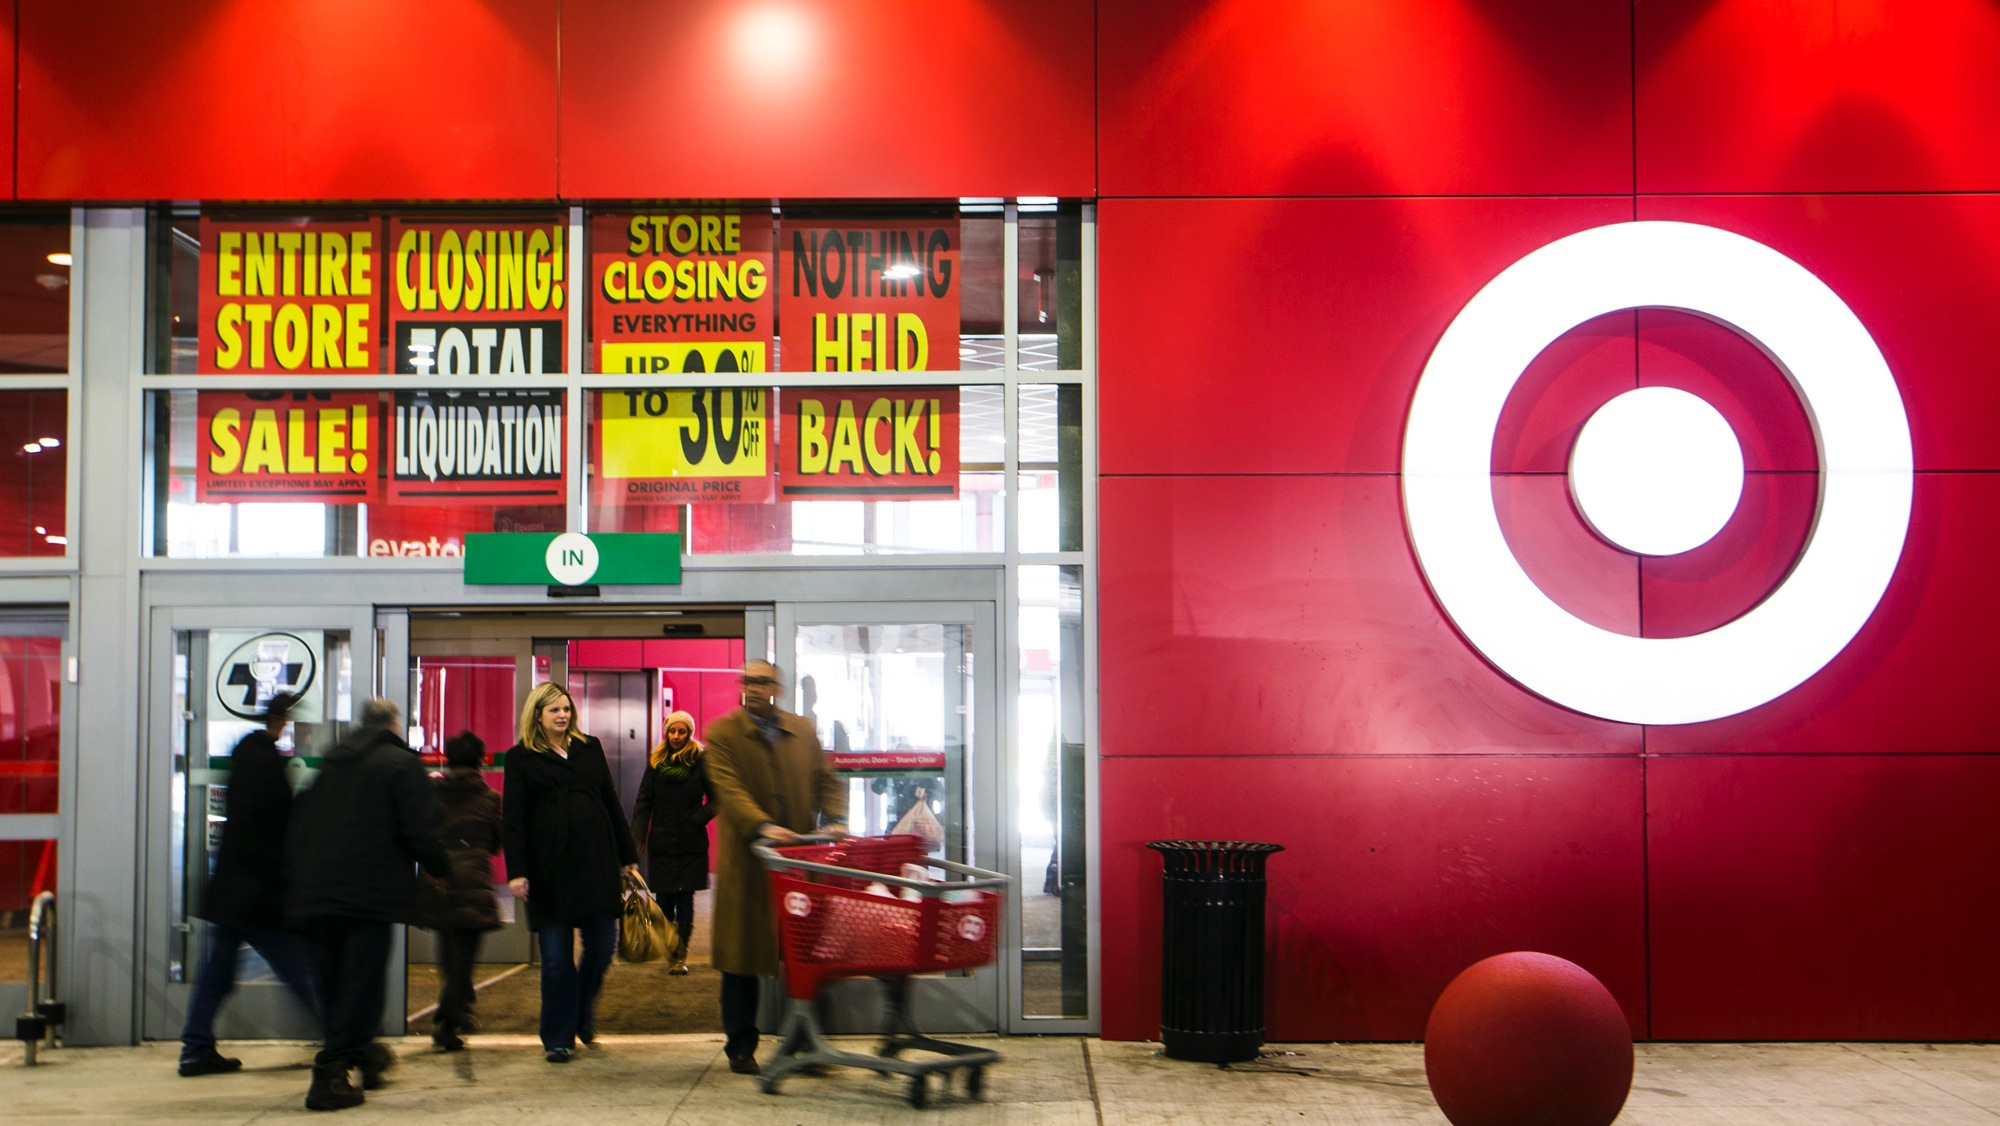 Liquidation Stores In Gta Target Canada 39s Failure Is Hurting Other Companies Quartz